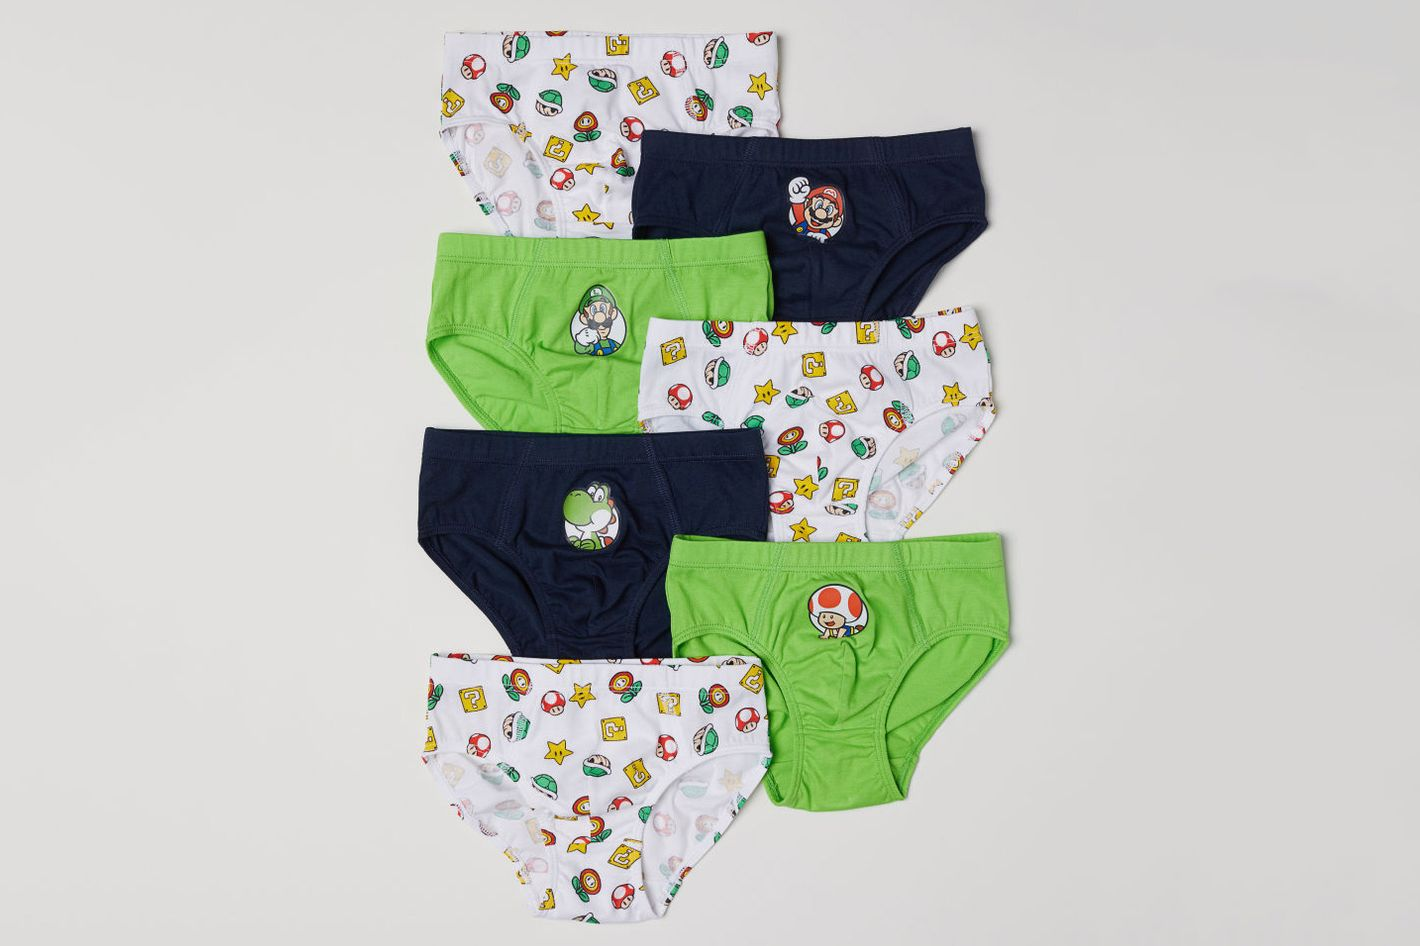 H&M 7-Pack Briefs (Super Mario)